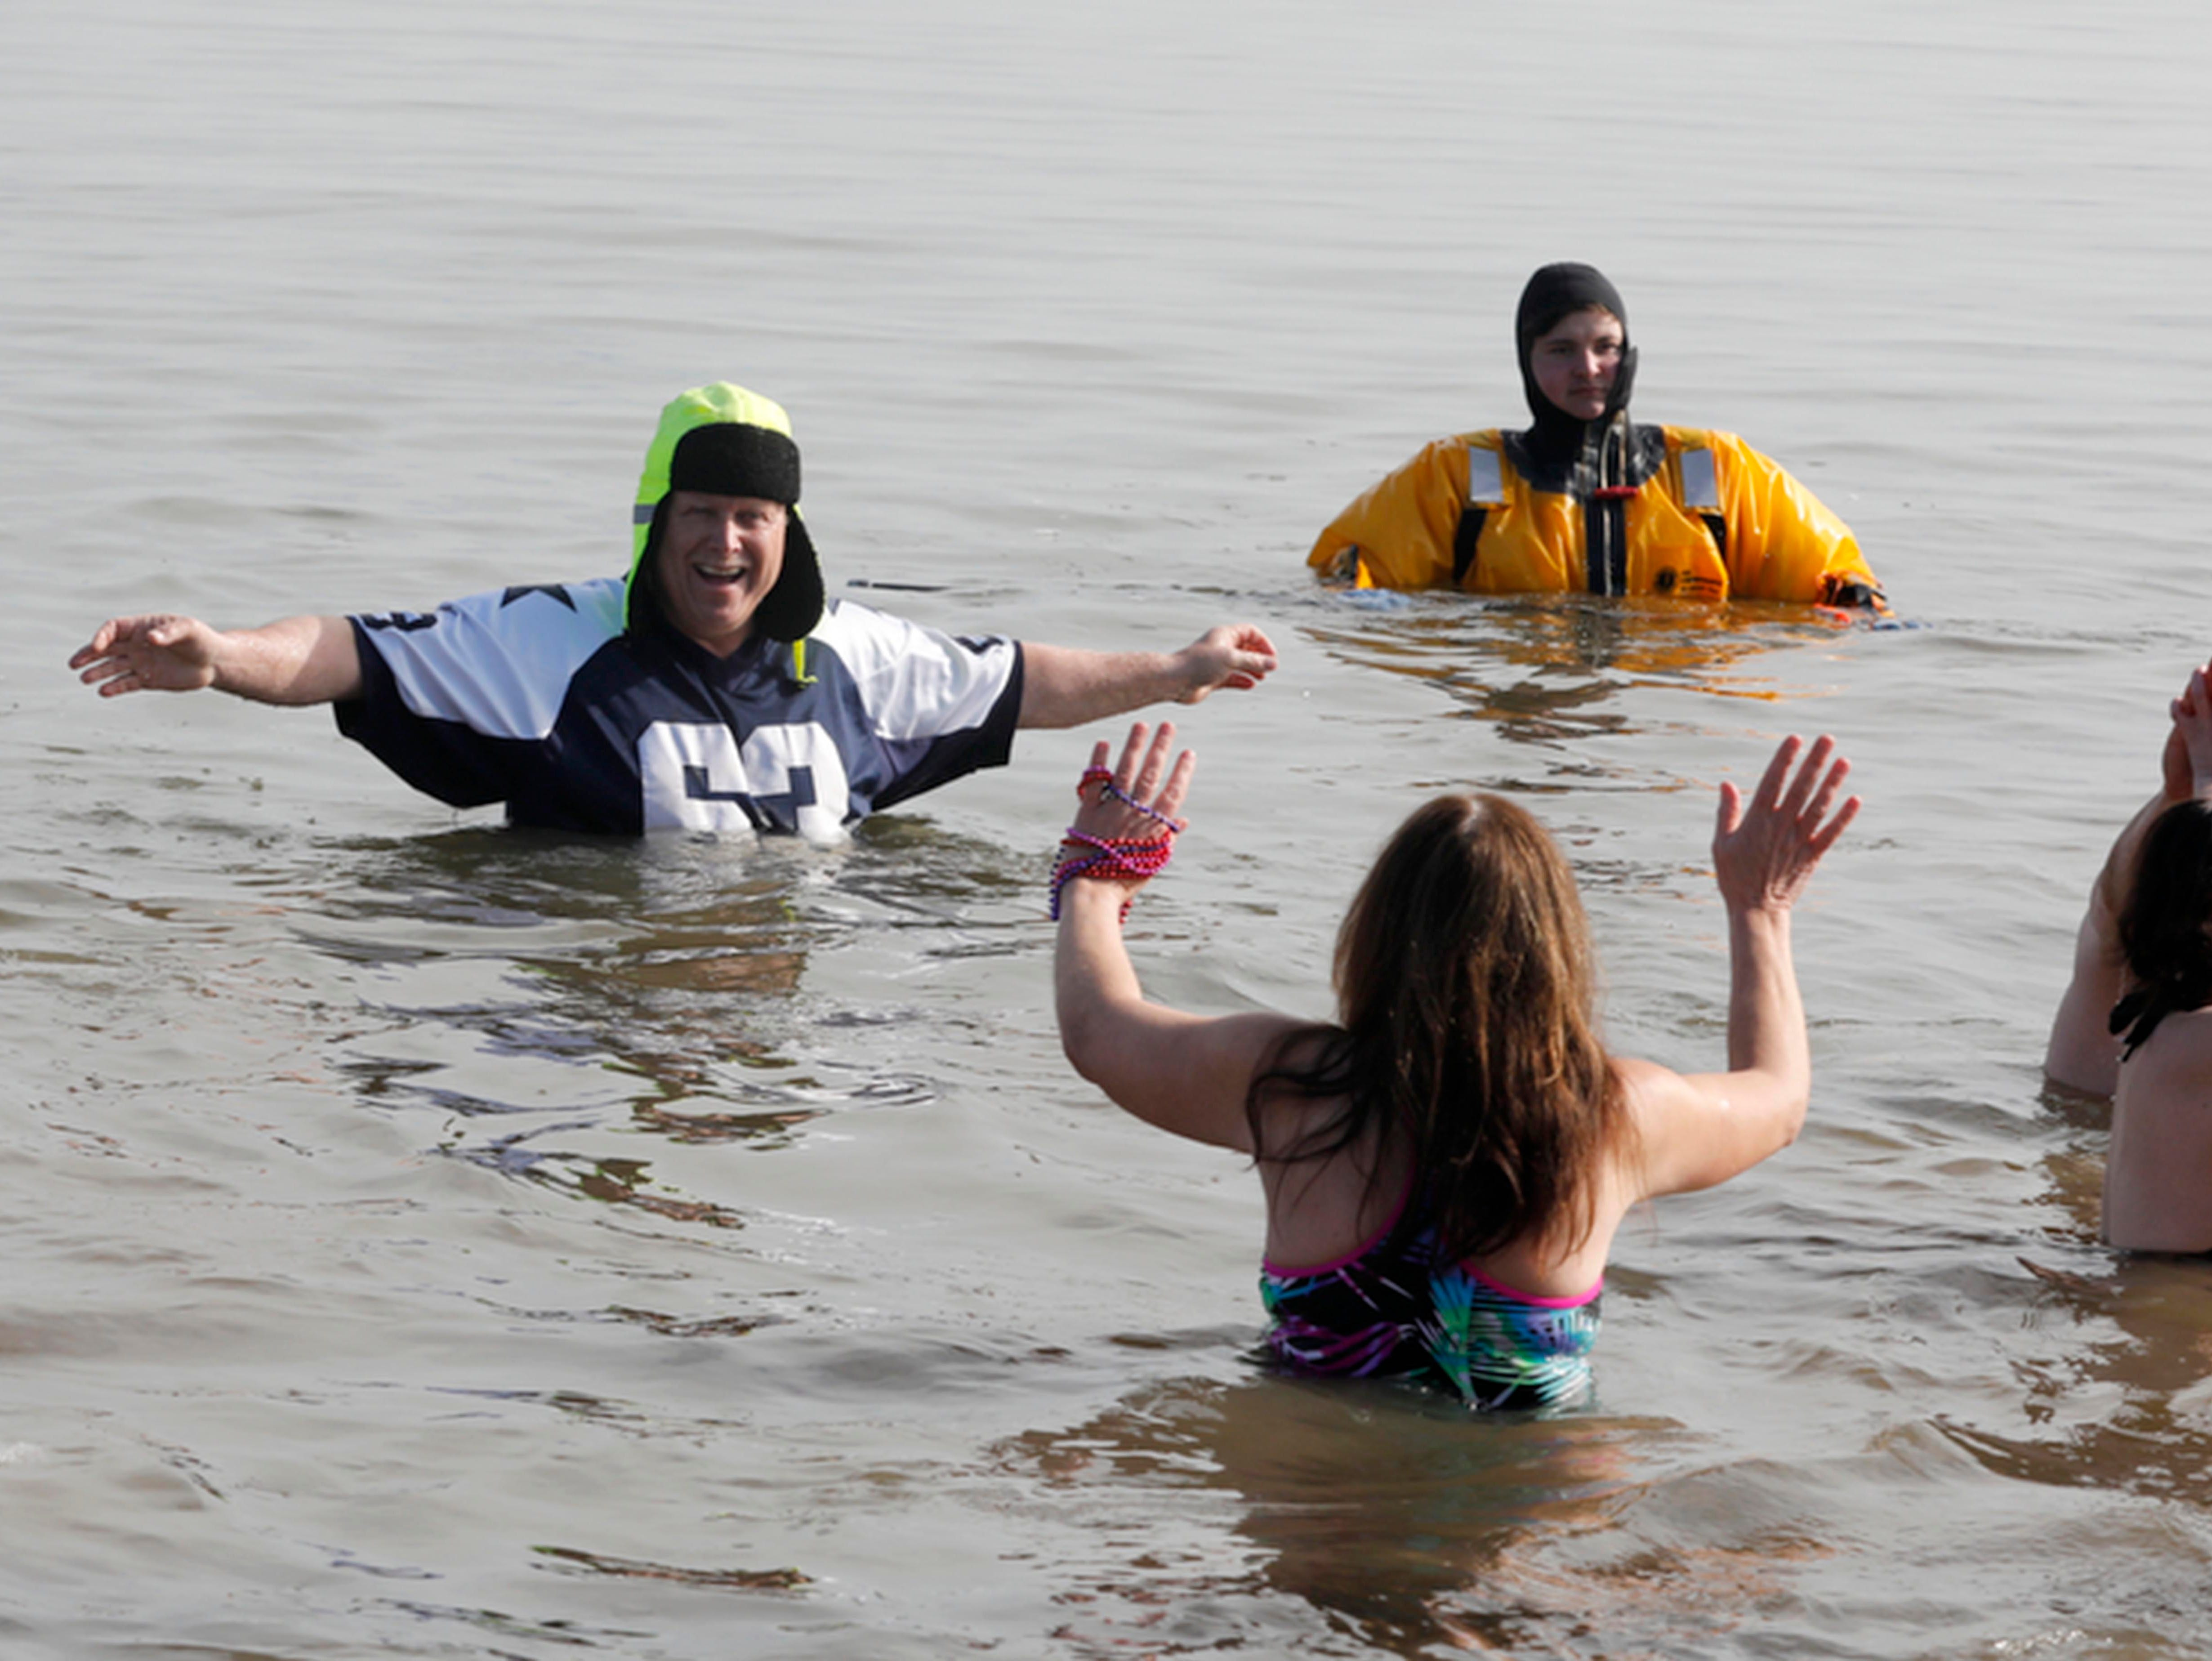 Over one-hundred participants splash around way in the Hudson River in Stony Point Feb. 3, 2019 for the 20th Stony Point Seals Annual Plunge. The annual event is a fundraiser for local individuals in the need of the community's support. This year's event raised money for two local children who are dealing with serious health issues. The event included music, food, raffles, and donated prizes.